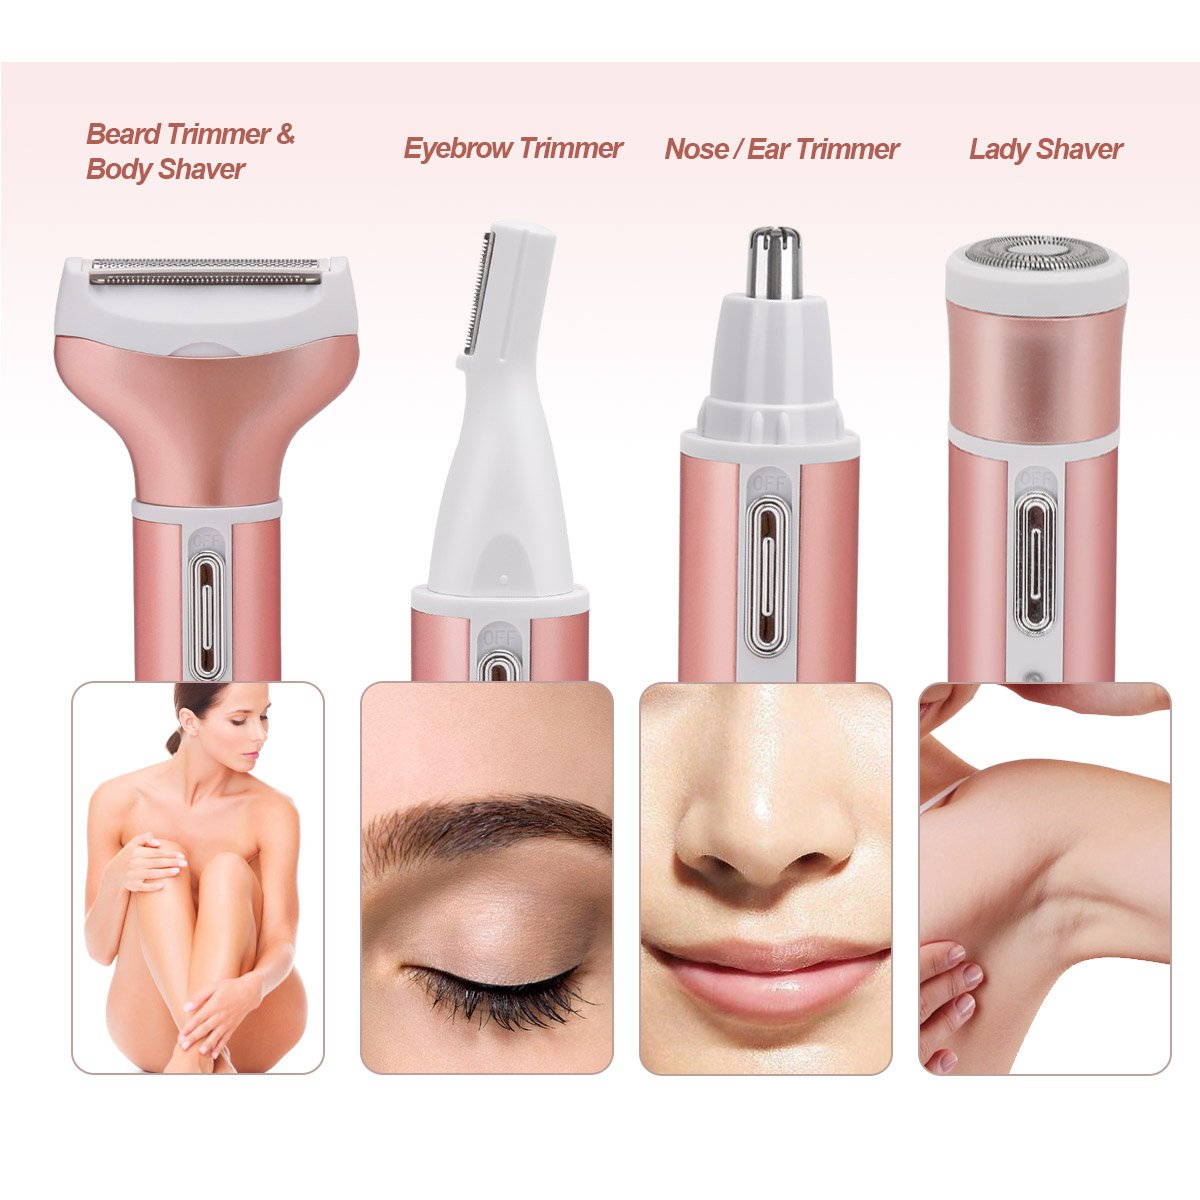 4 in 1 Bikini Trimmer Rechargeable Women's Electric Shaver Facial Hair Removal Set - Pink